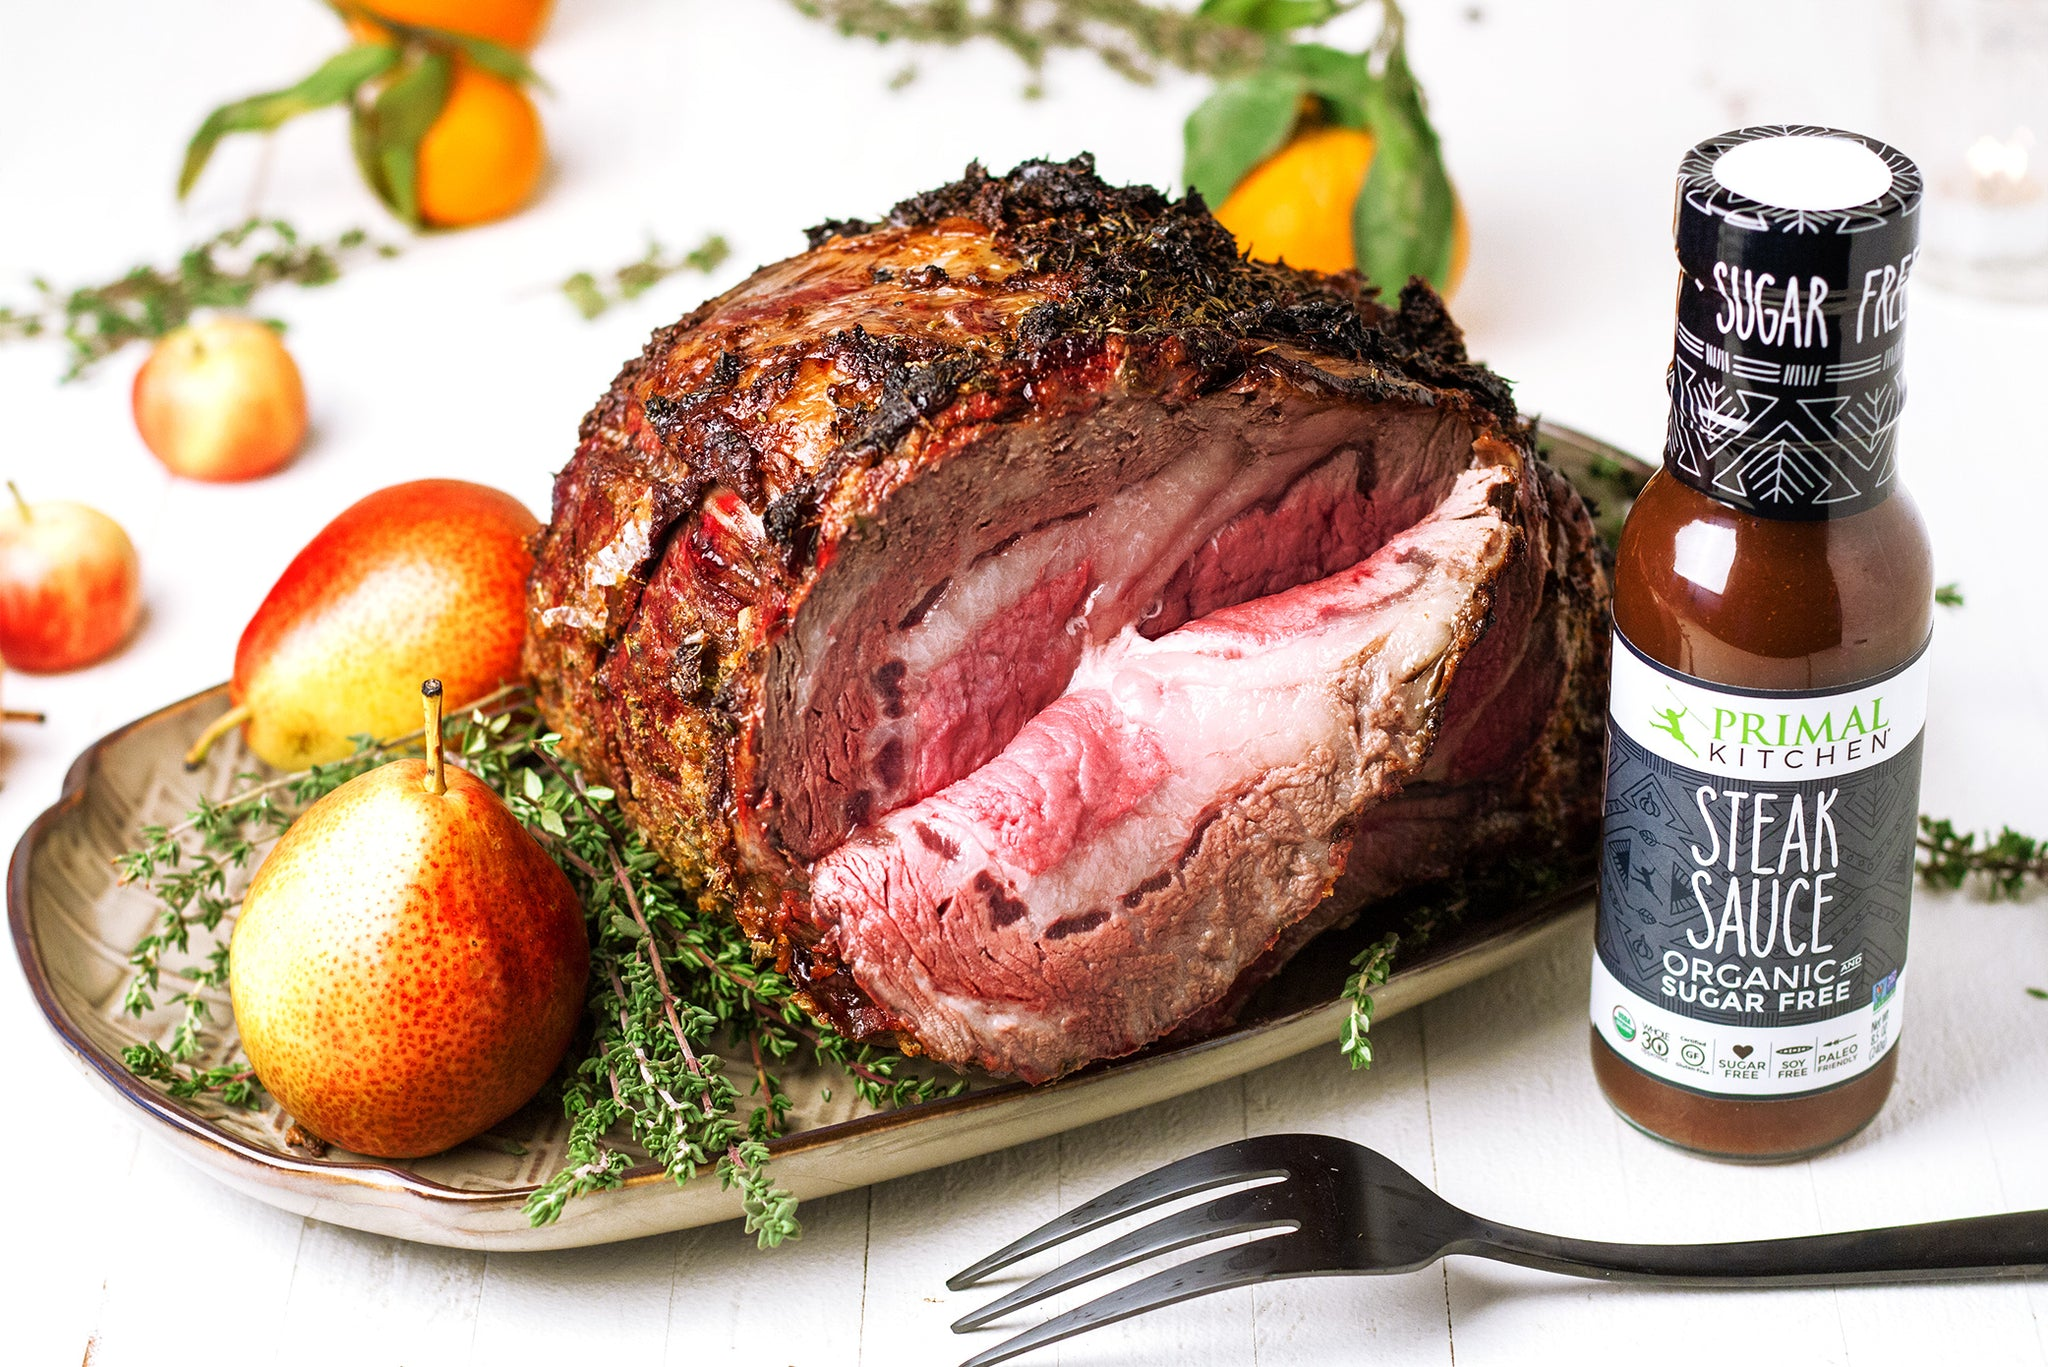 Whole30-Approved Prime Rib | Primal Kitchen®